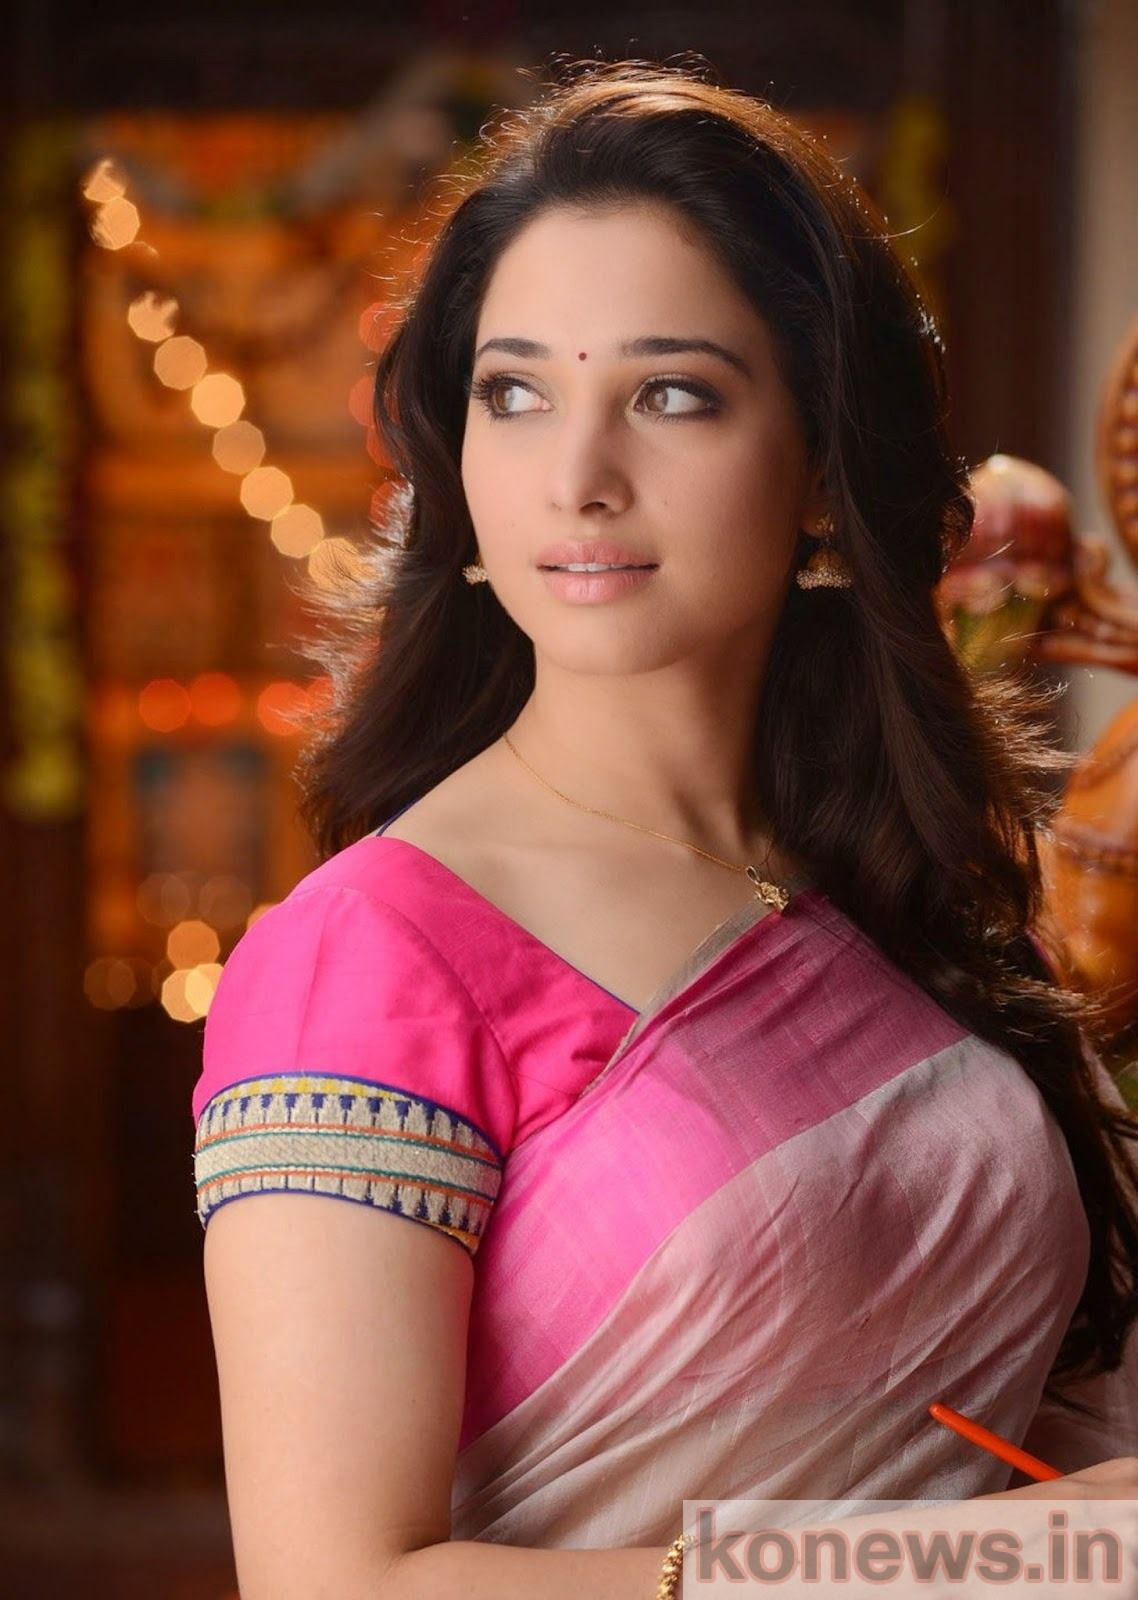 tamanna bhatia hd wallpapers free download5 | actress gallery